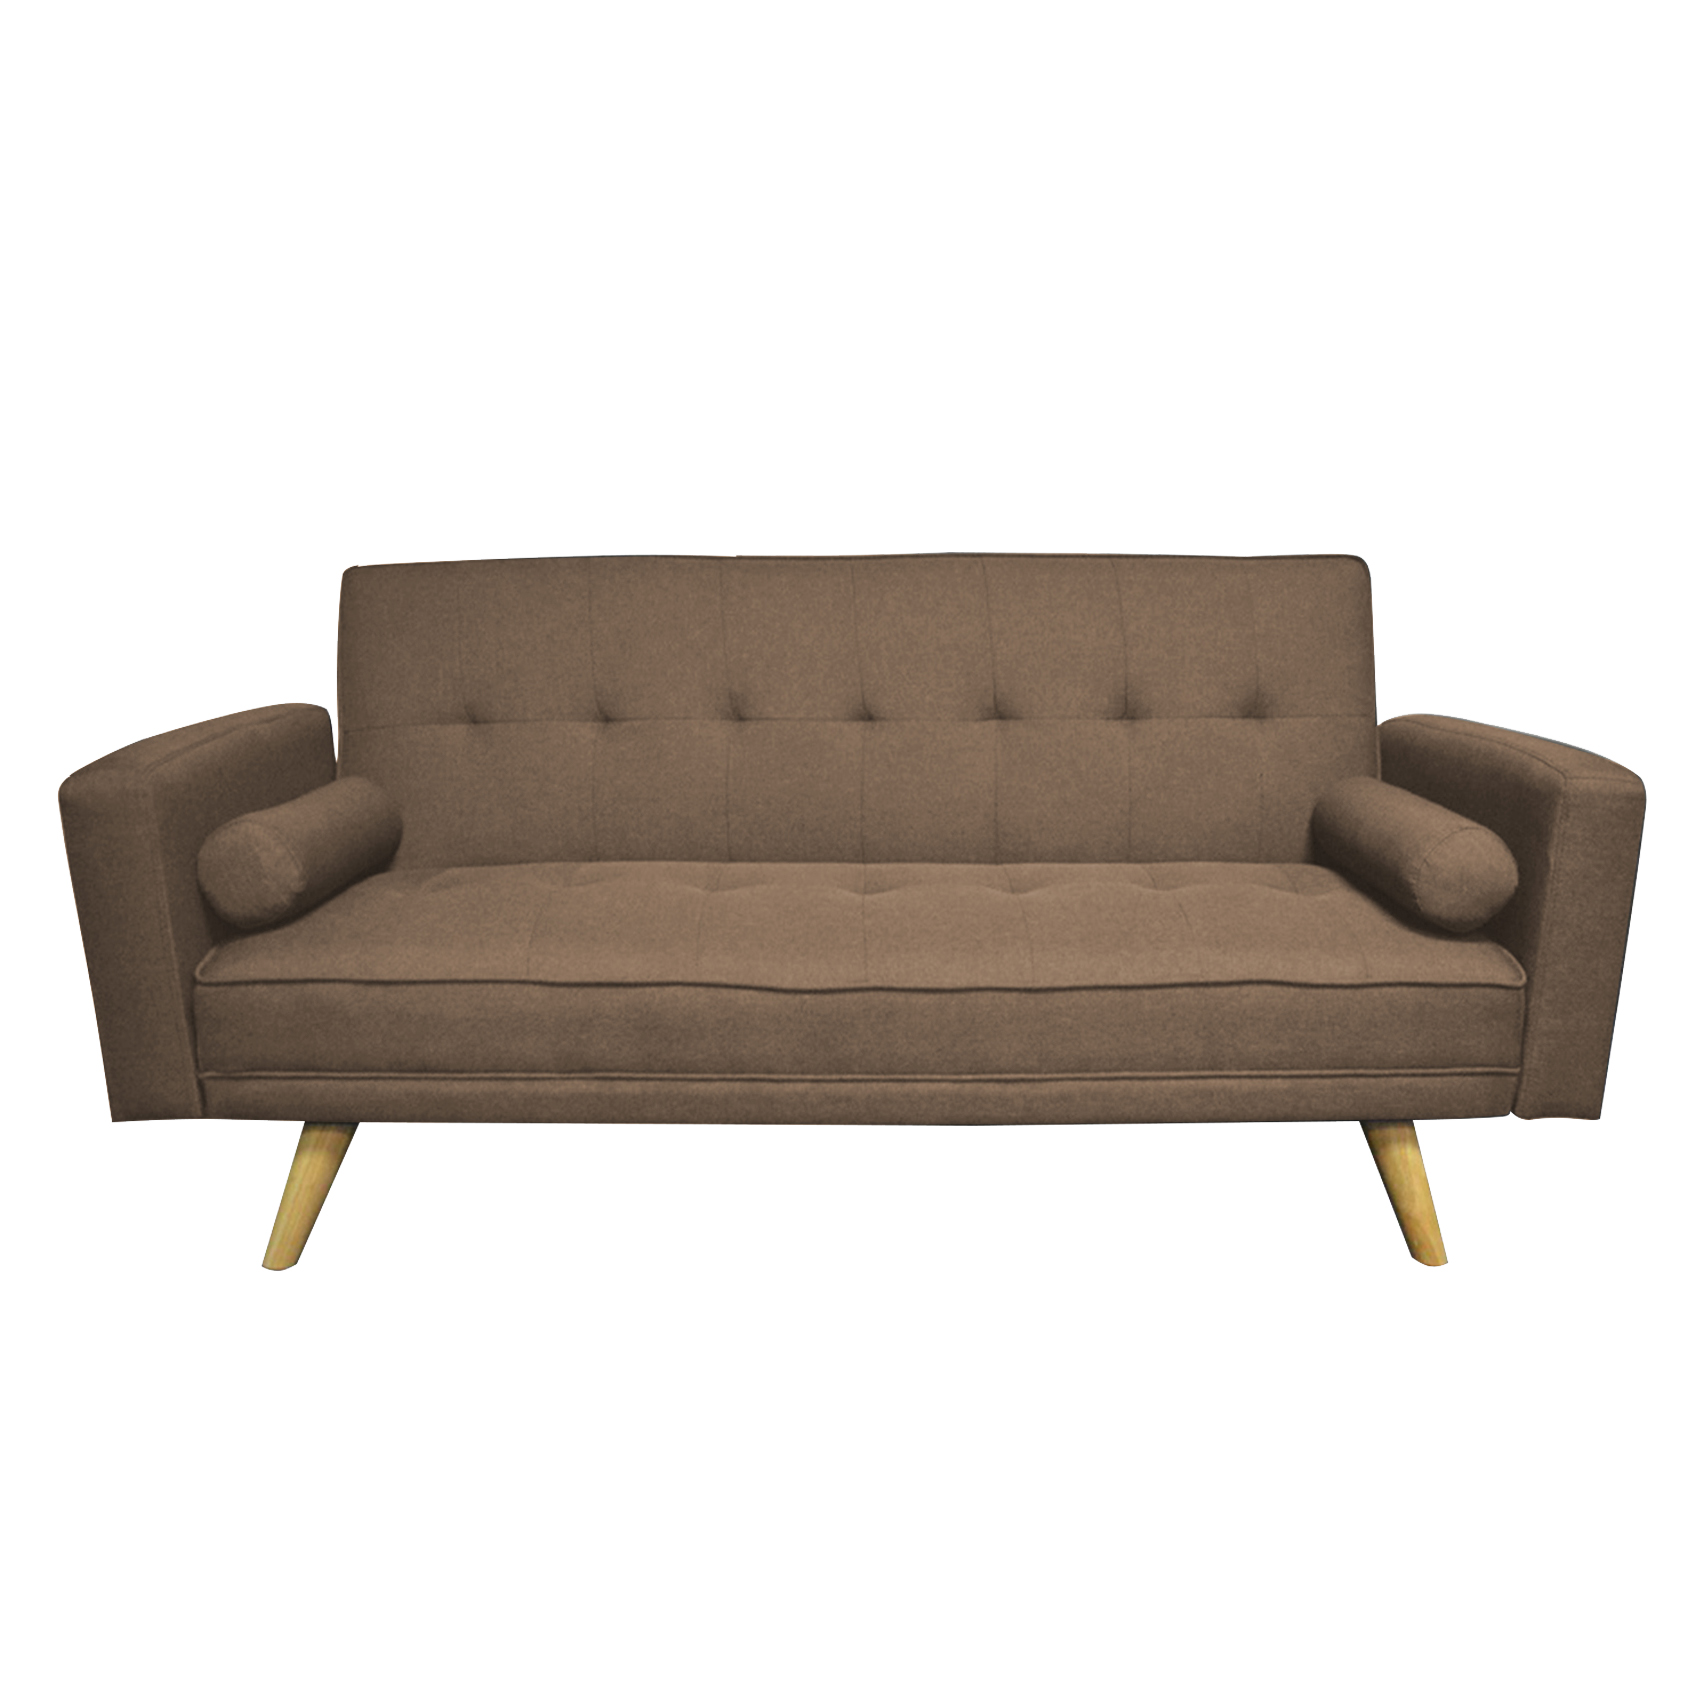 Couches Perth Sofa Beds Cheap Perth Baci Living Room